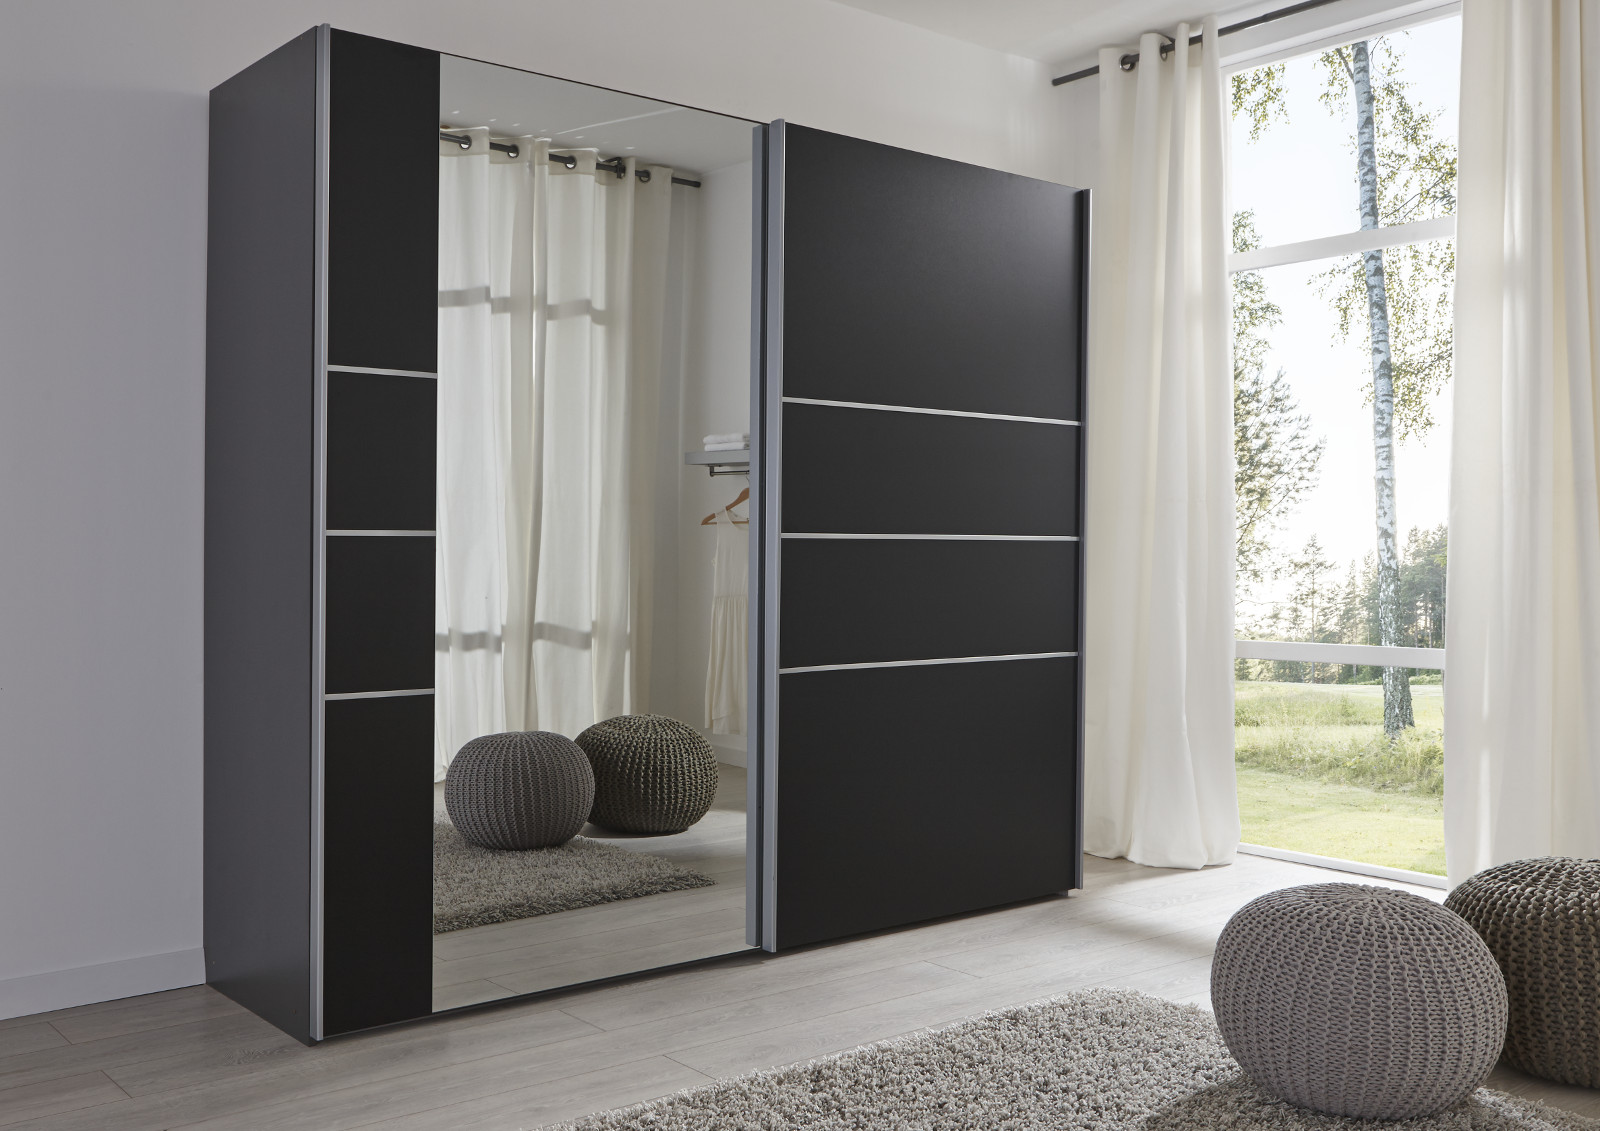 schwebet renschrank kleiderschrank schwarz spiegel. Black Bedroom Furniture Sets. Home Design Ideas